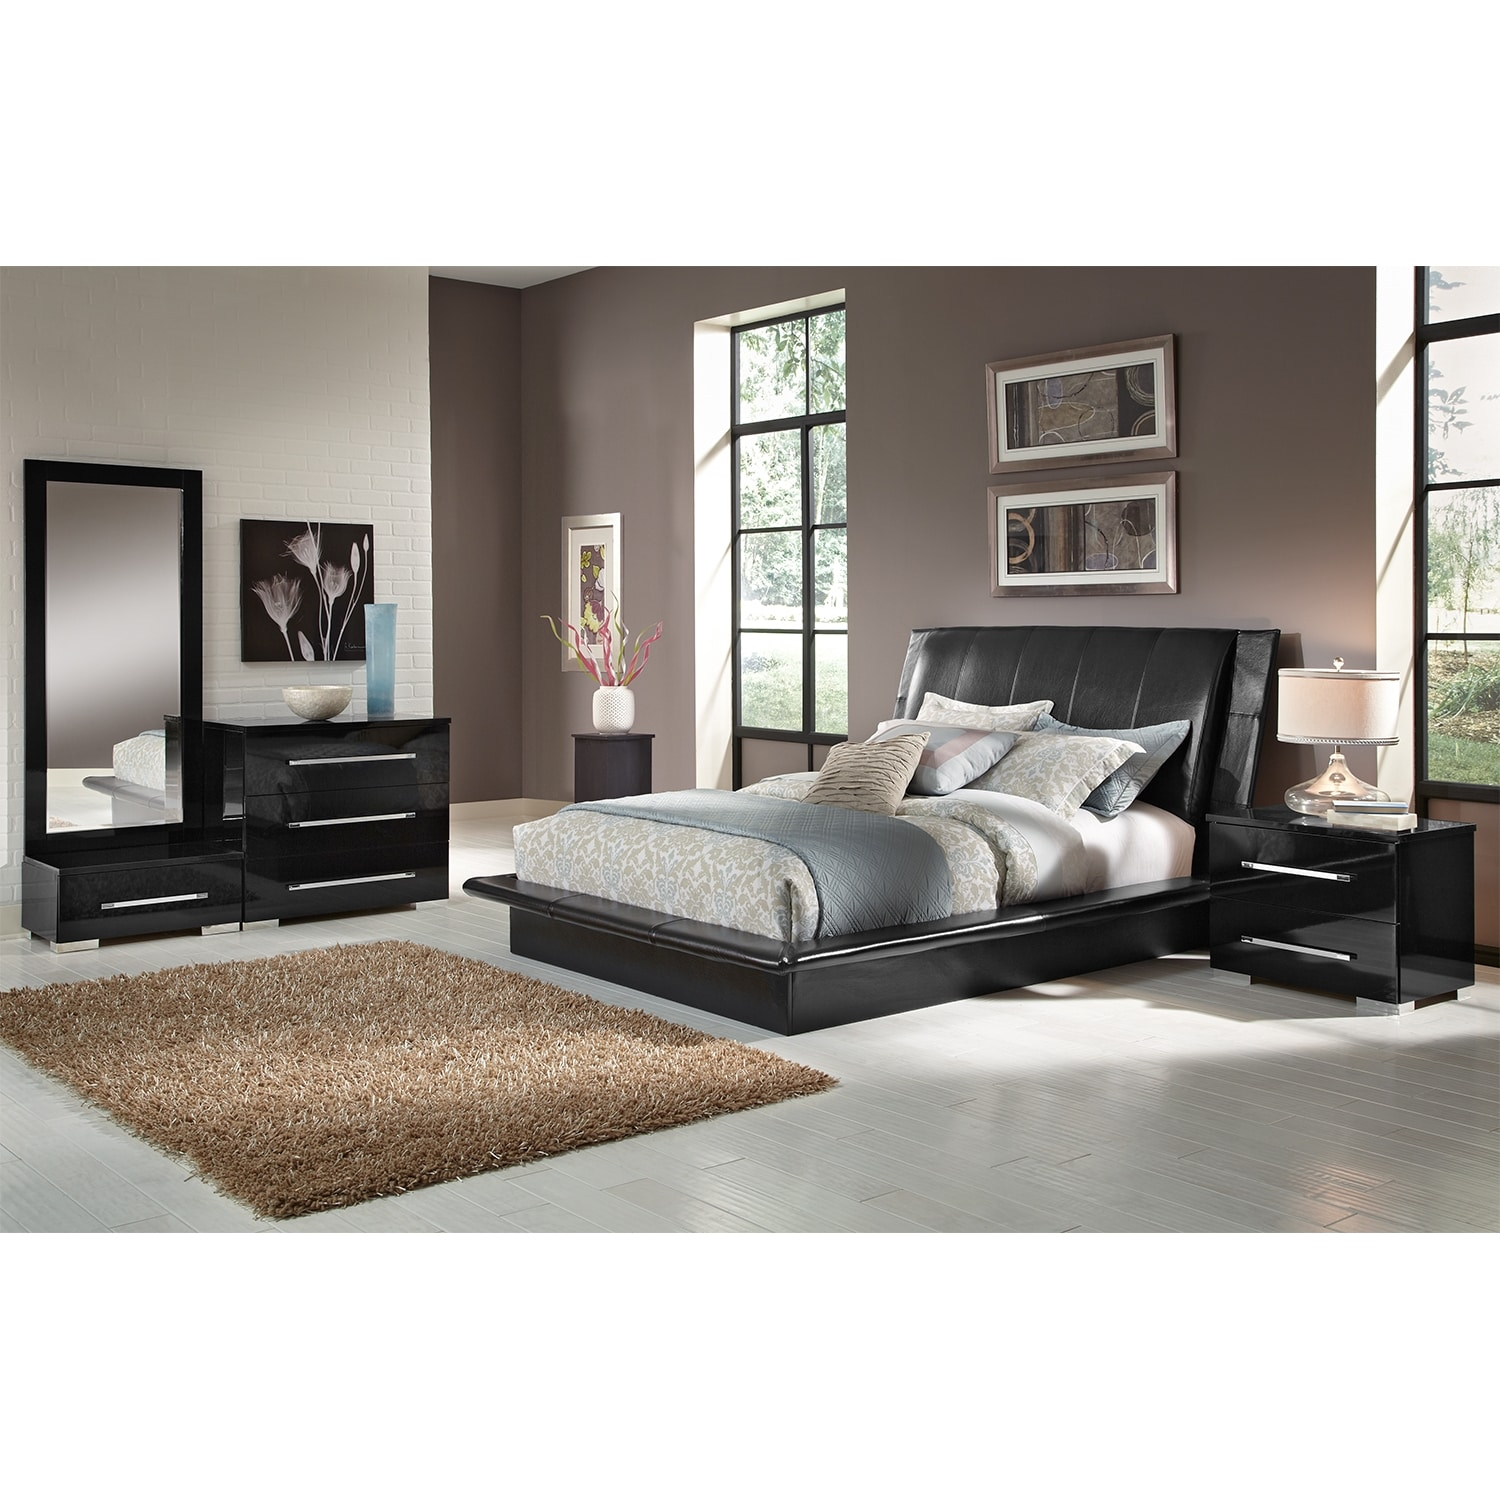 Dimora 6-Piece Queen Upholstered Bedroom Set - Black